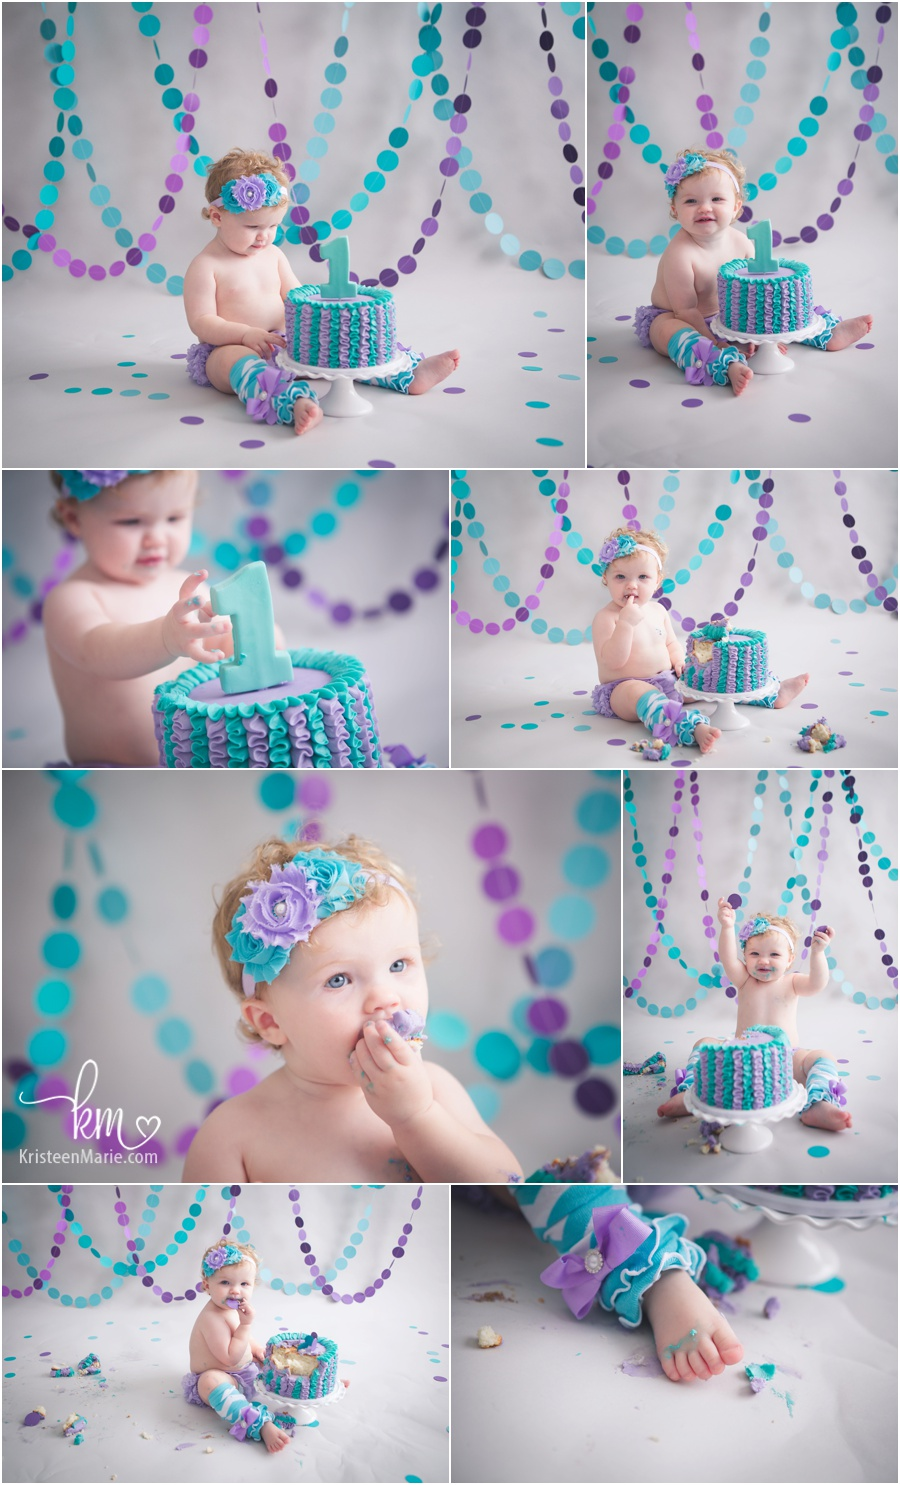 purple and teal 1st birthday cake smash - girly birthday theme for cake smash photography